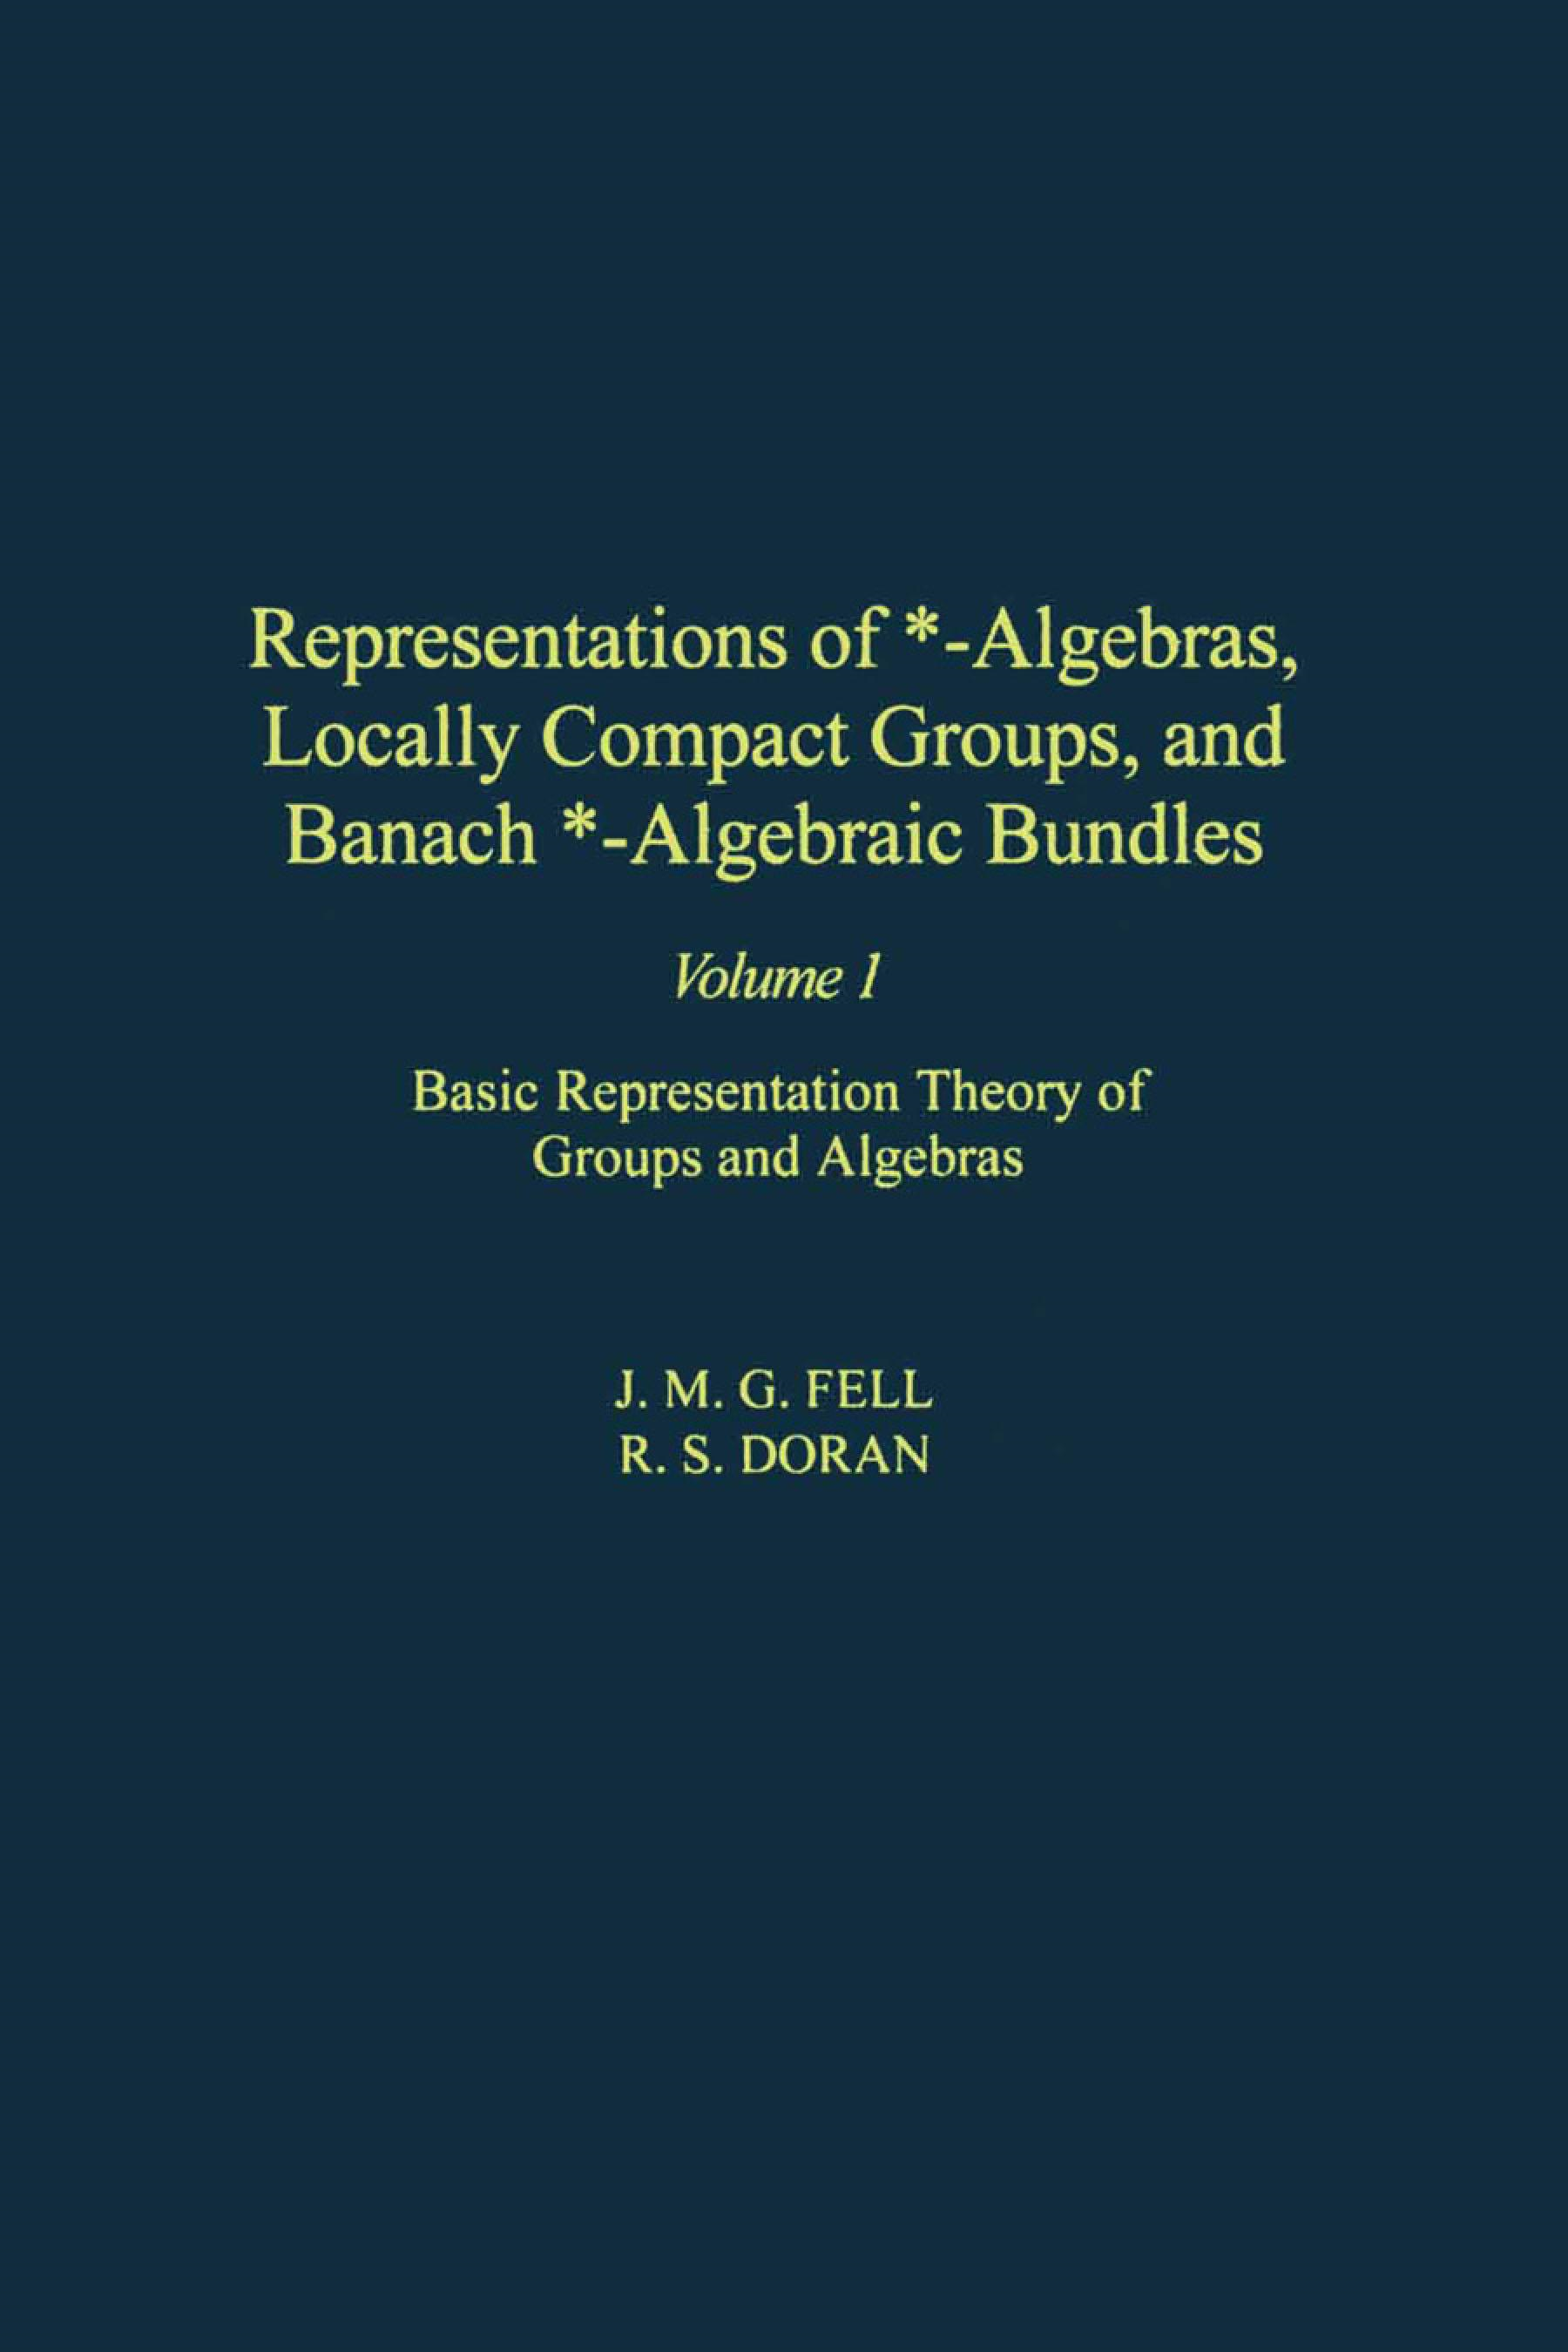 Representations of *-Algebras, Locally Compact Groups, and Banach *-Algebraic Bundles: Basic Representation Theory of Groups and Algebras